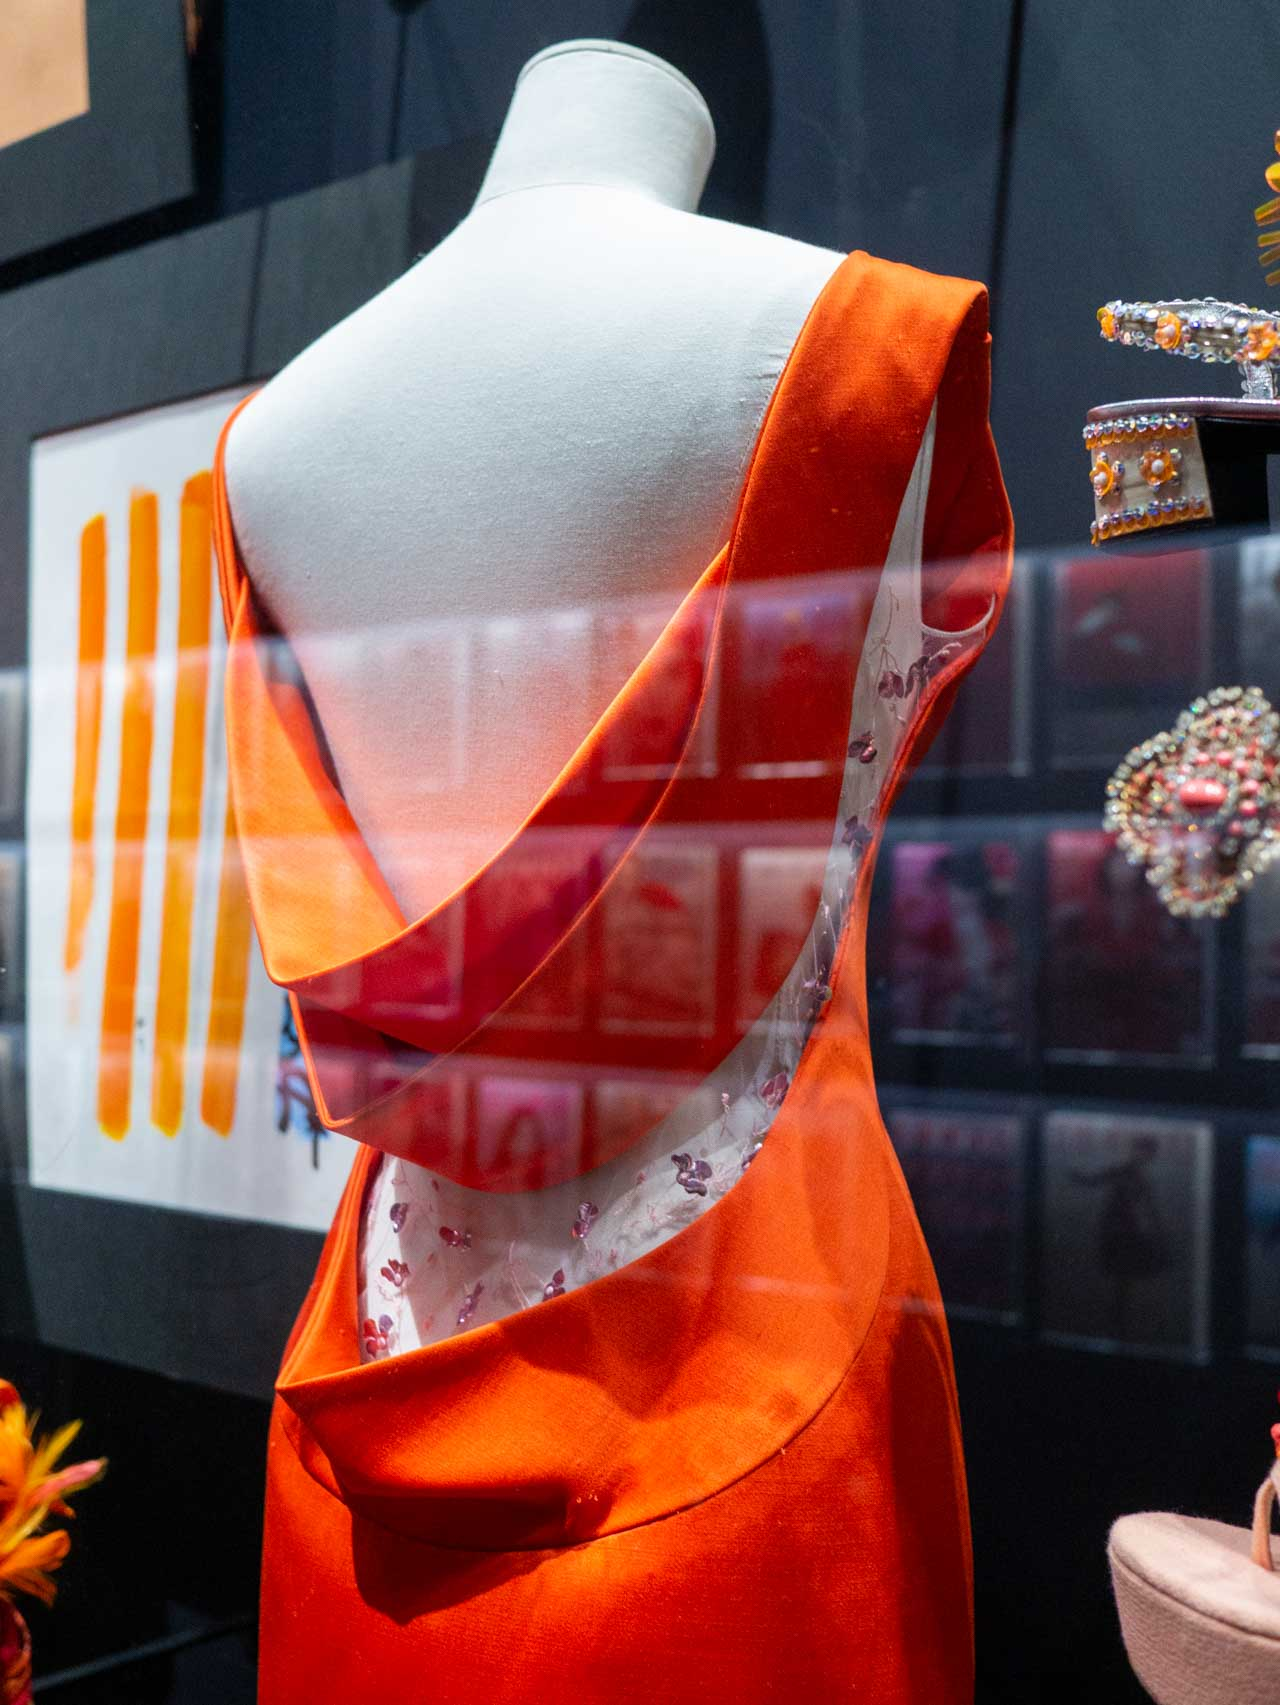 Detail of orange wool dress by Raf Simons for Christian Dior, Haute Couture, Spring-Summer 2013. Taken at the V&A exhibition © The Cutting Class, 2019.